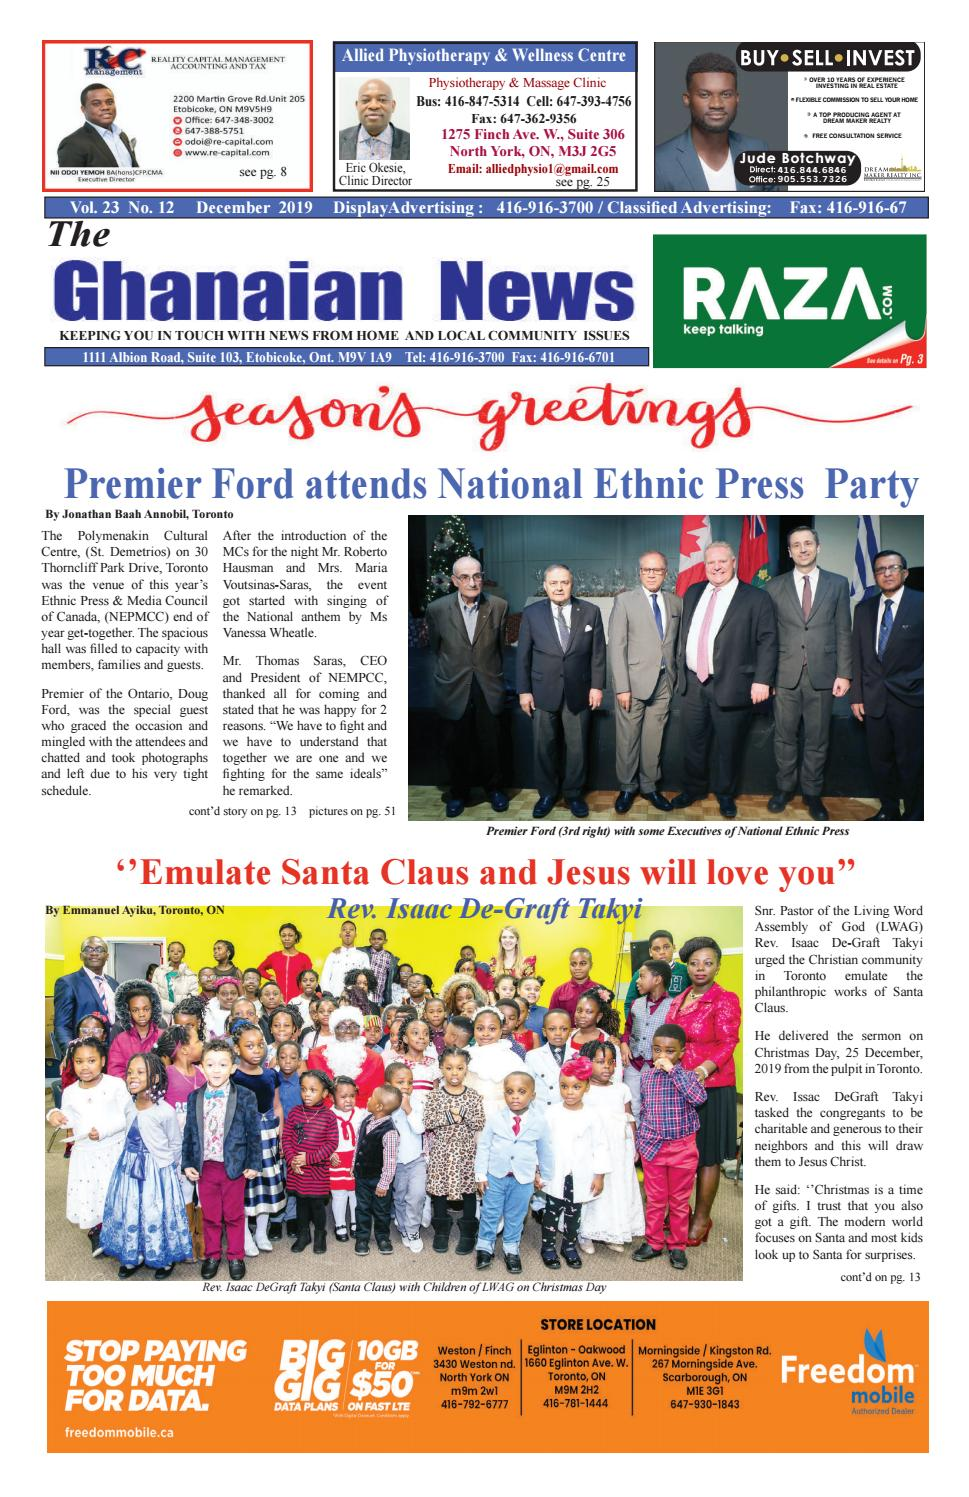 Freedom investments ghana news kieu ao vest cong so